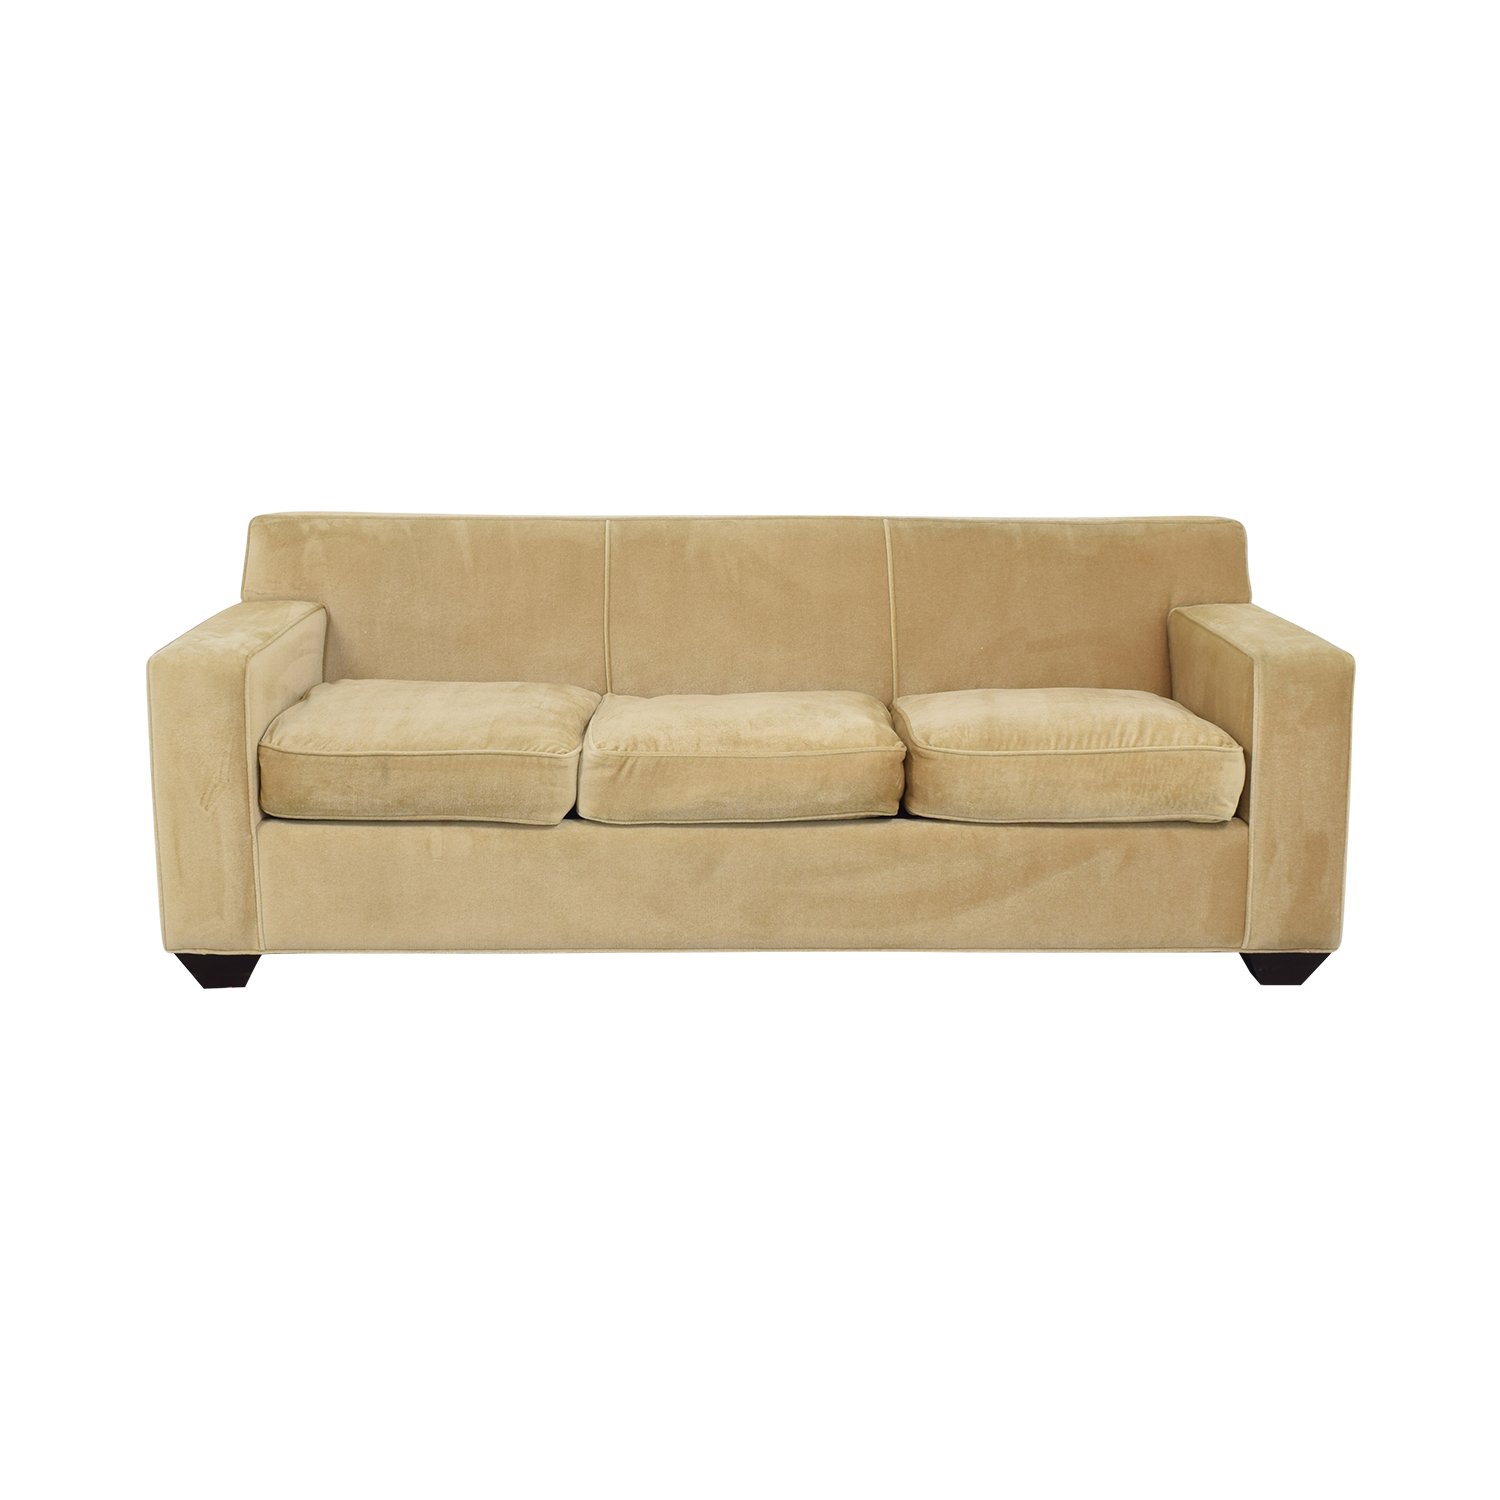 Avery Boardman Avery Boardman Style B148 Sleeper Sofa nj